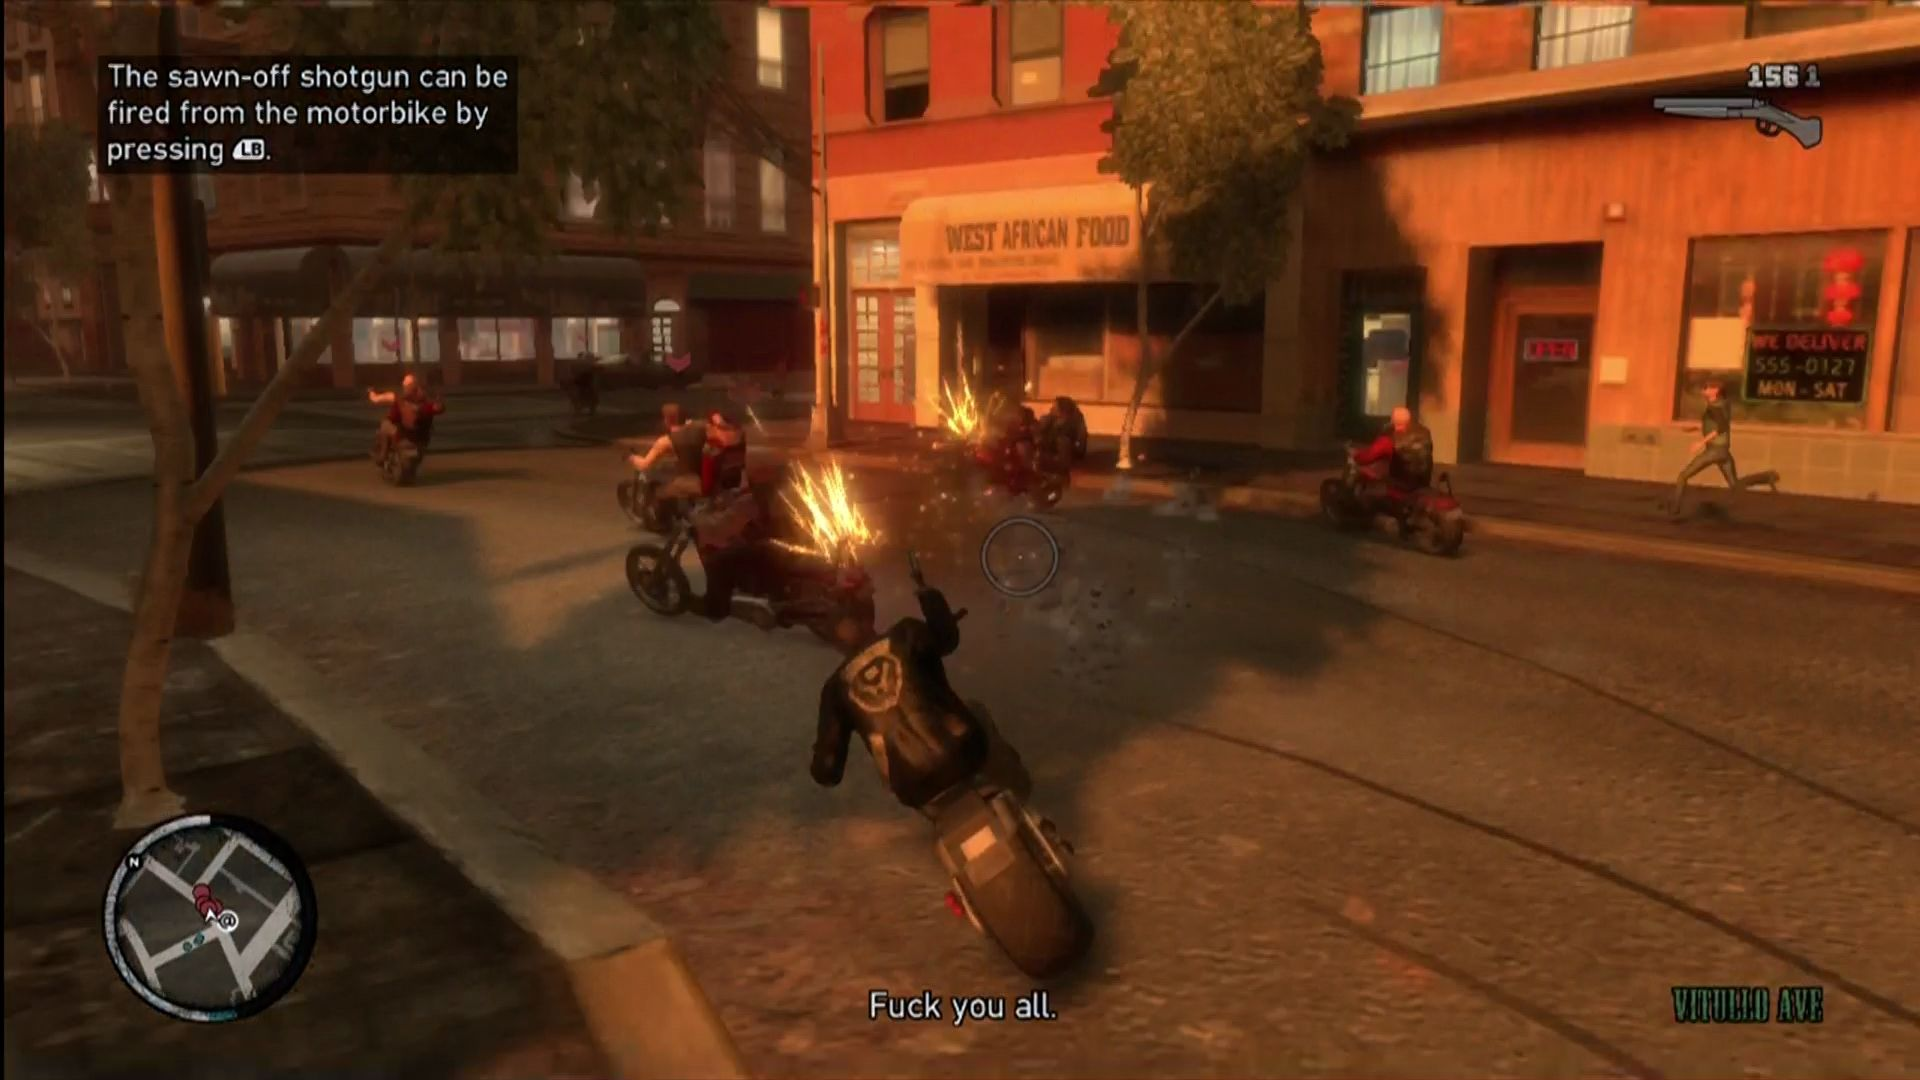 Grand Theft Auto IV: The Lost and Damned Xbox 360 Lots of motorcycle combat. Hope you can aim and drive at the same time.